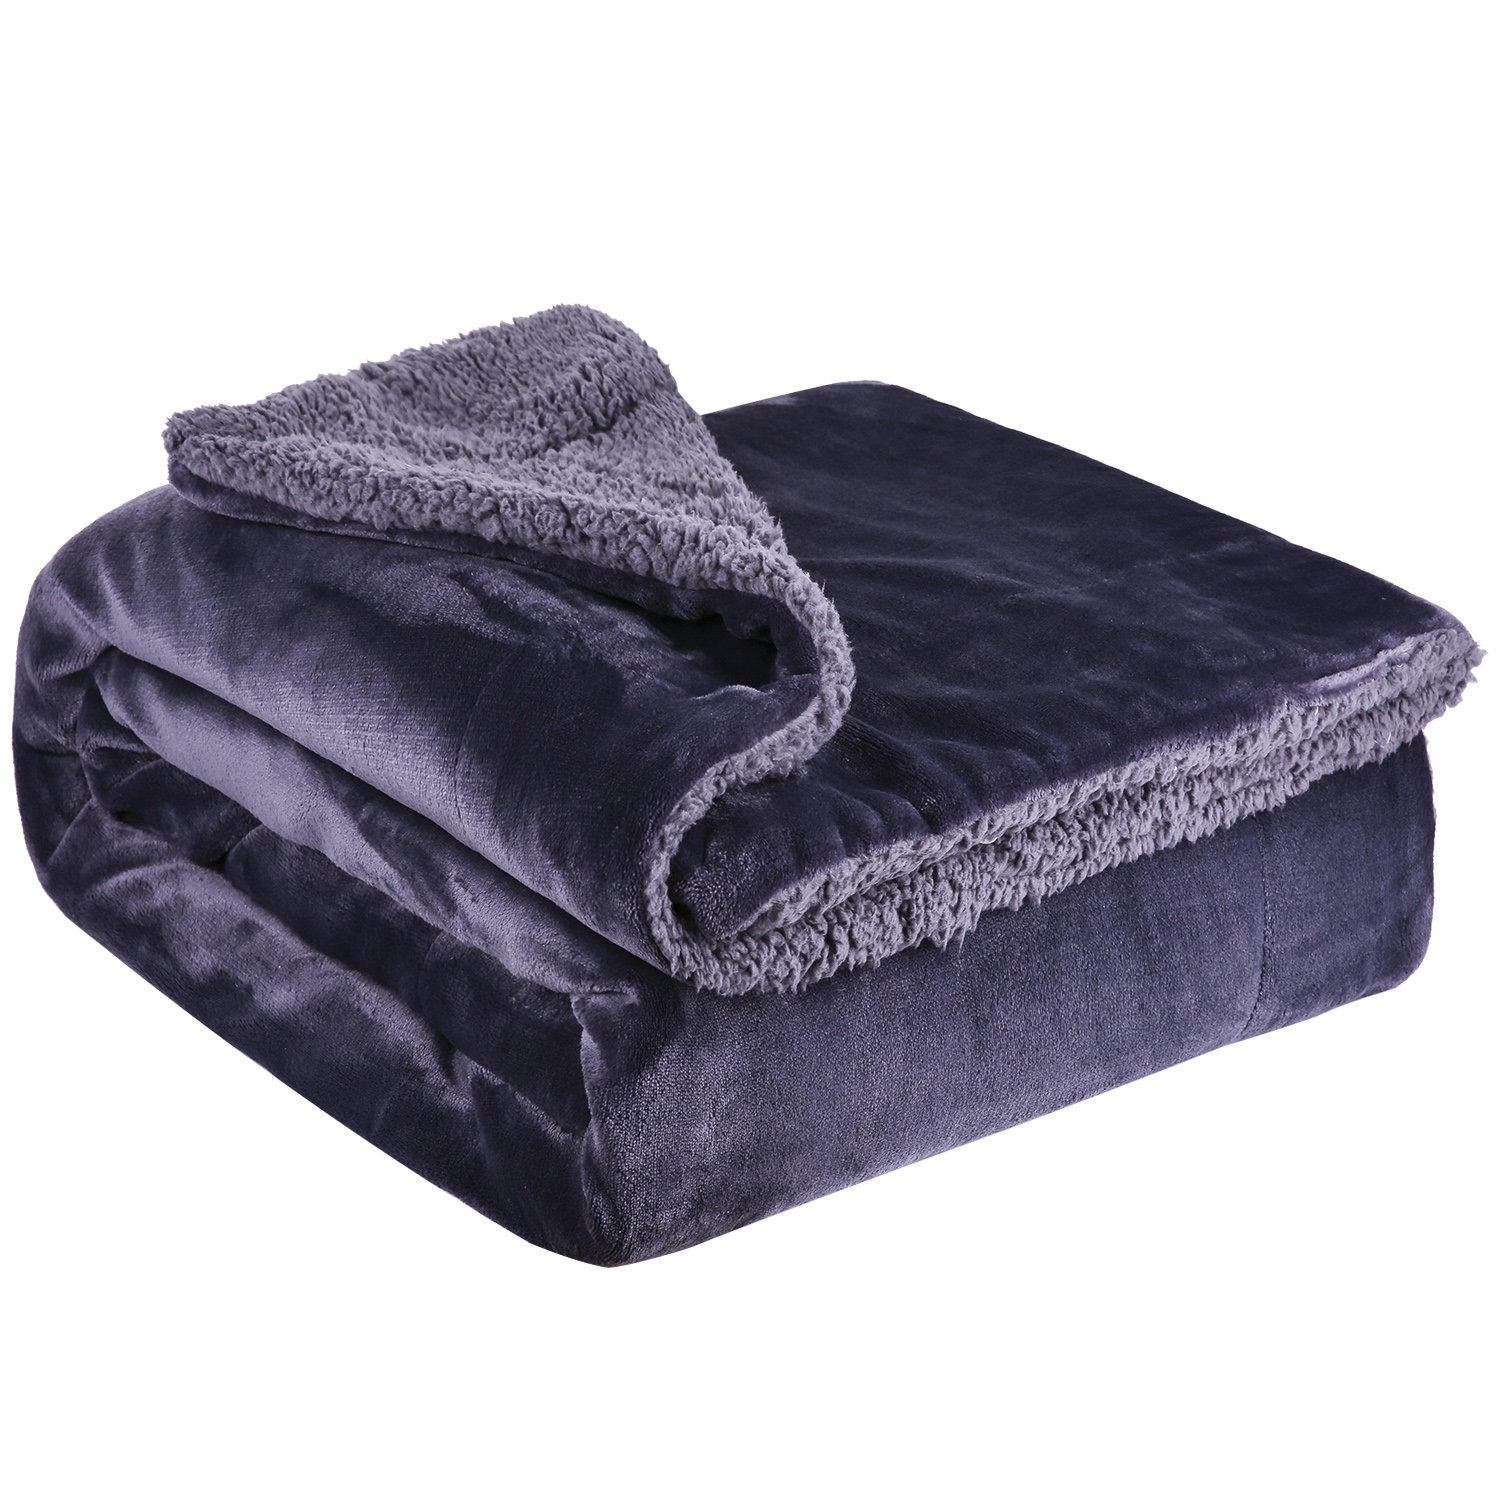 Fleece Throw Blanket Twin Size - Fuzzy Sherpa Plush Queen Summer Throw Blanket for Couch Soft Comforter Heavy Weighted Couch Sofa Bed 60x80